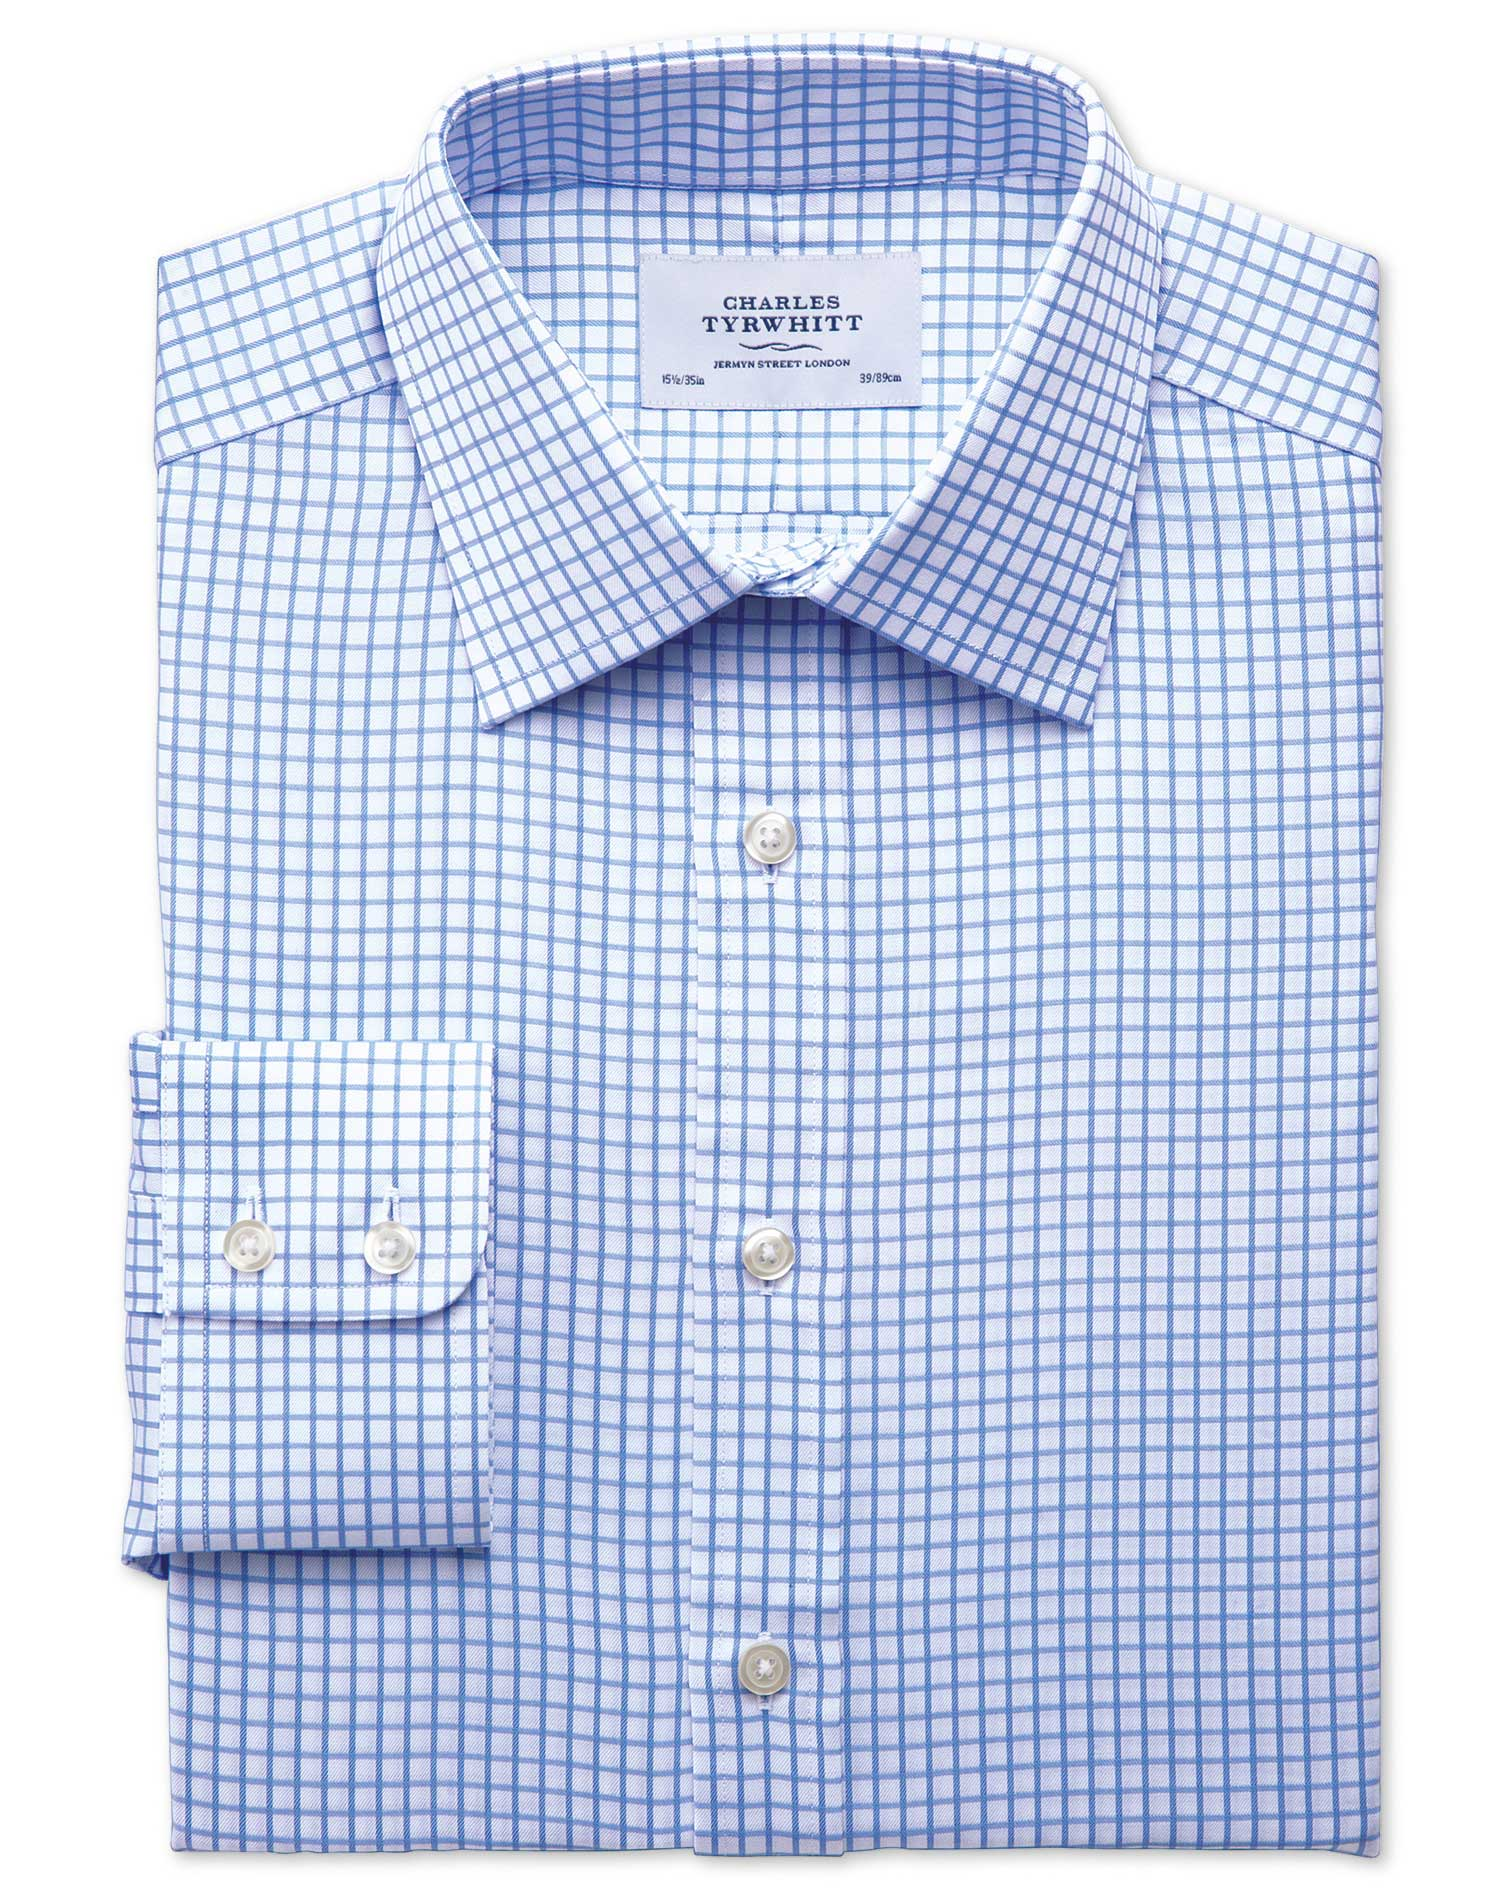 Classic Fit Twill Grid Check Sky Blue Cotton Formal Shirt Single Cuff Size 15/35 by Charles Tyrwhitt